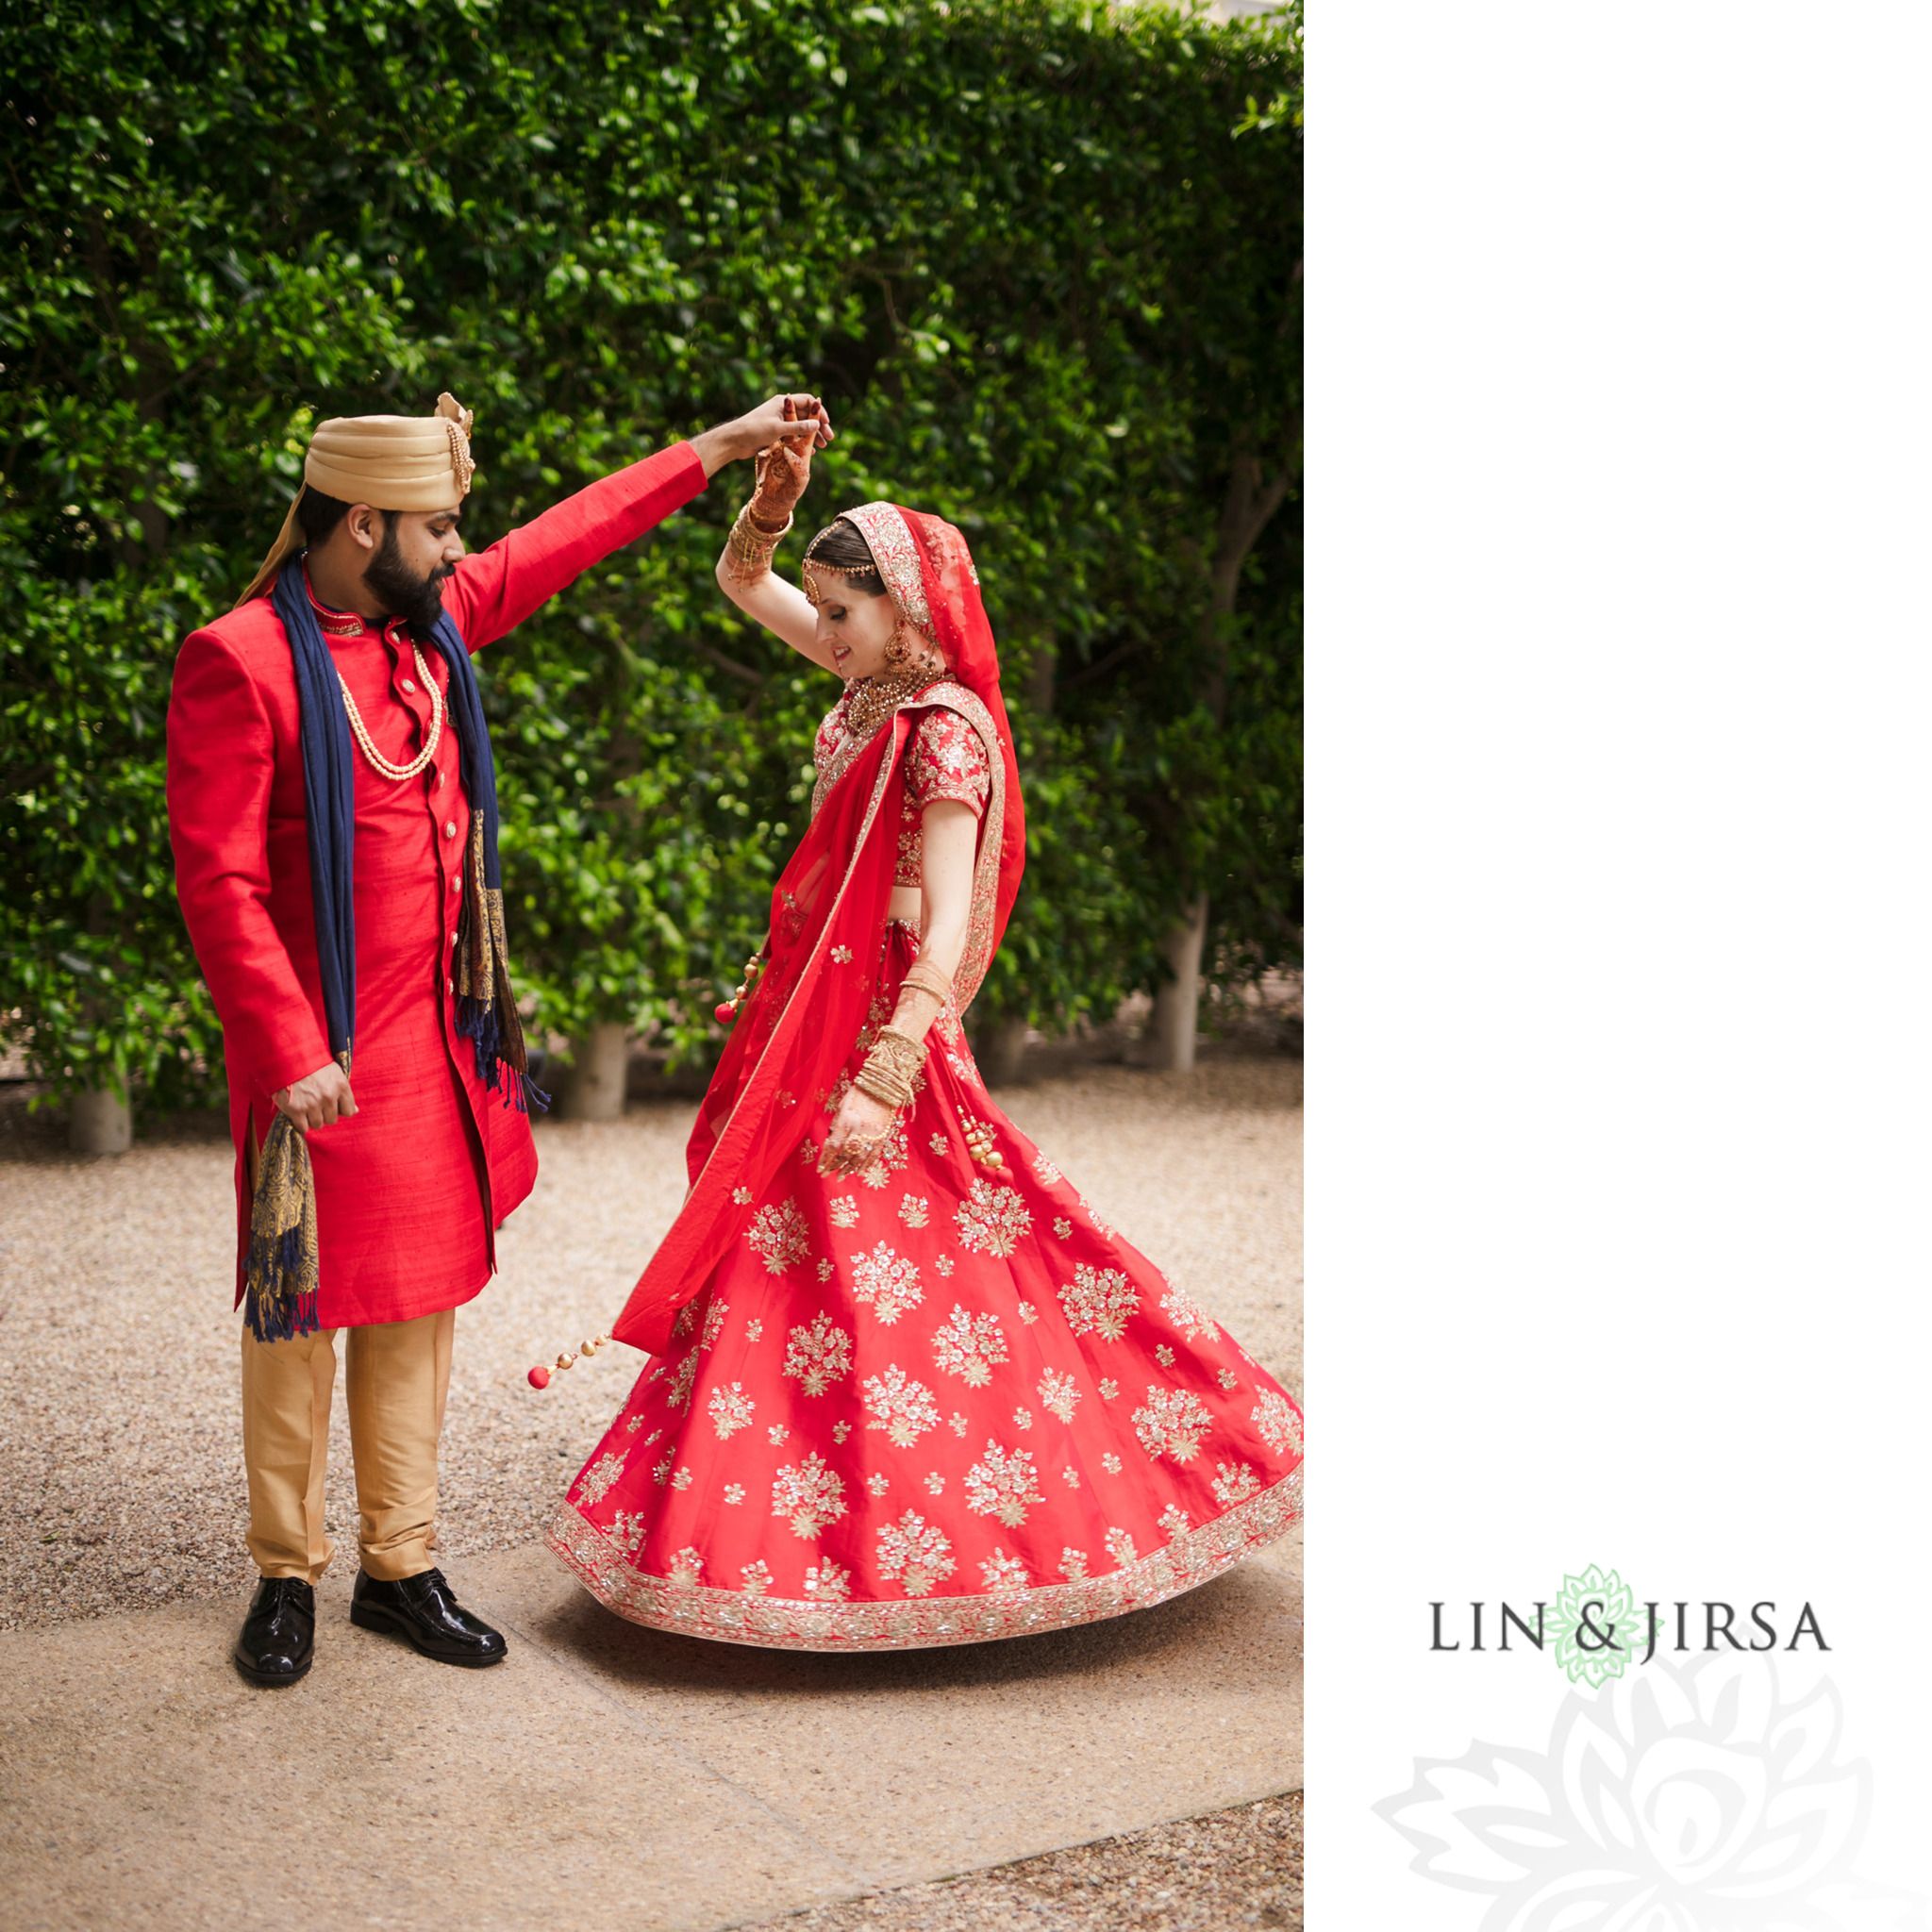 12 Hotel Irvine Multicultural Indian Wedding Photography